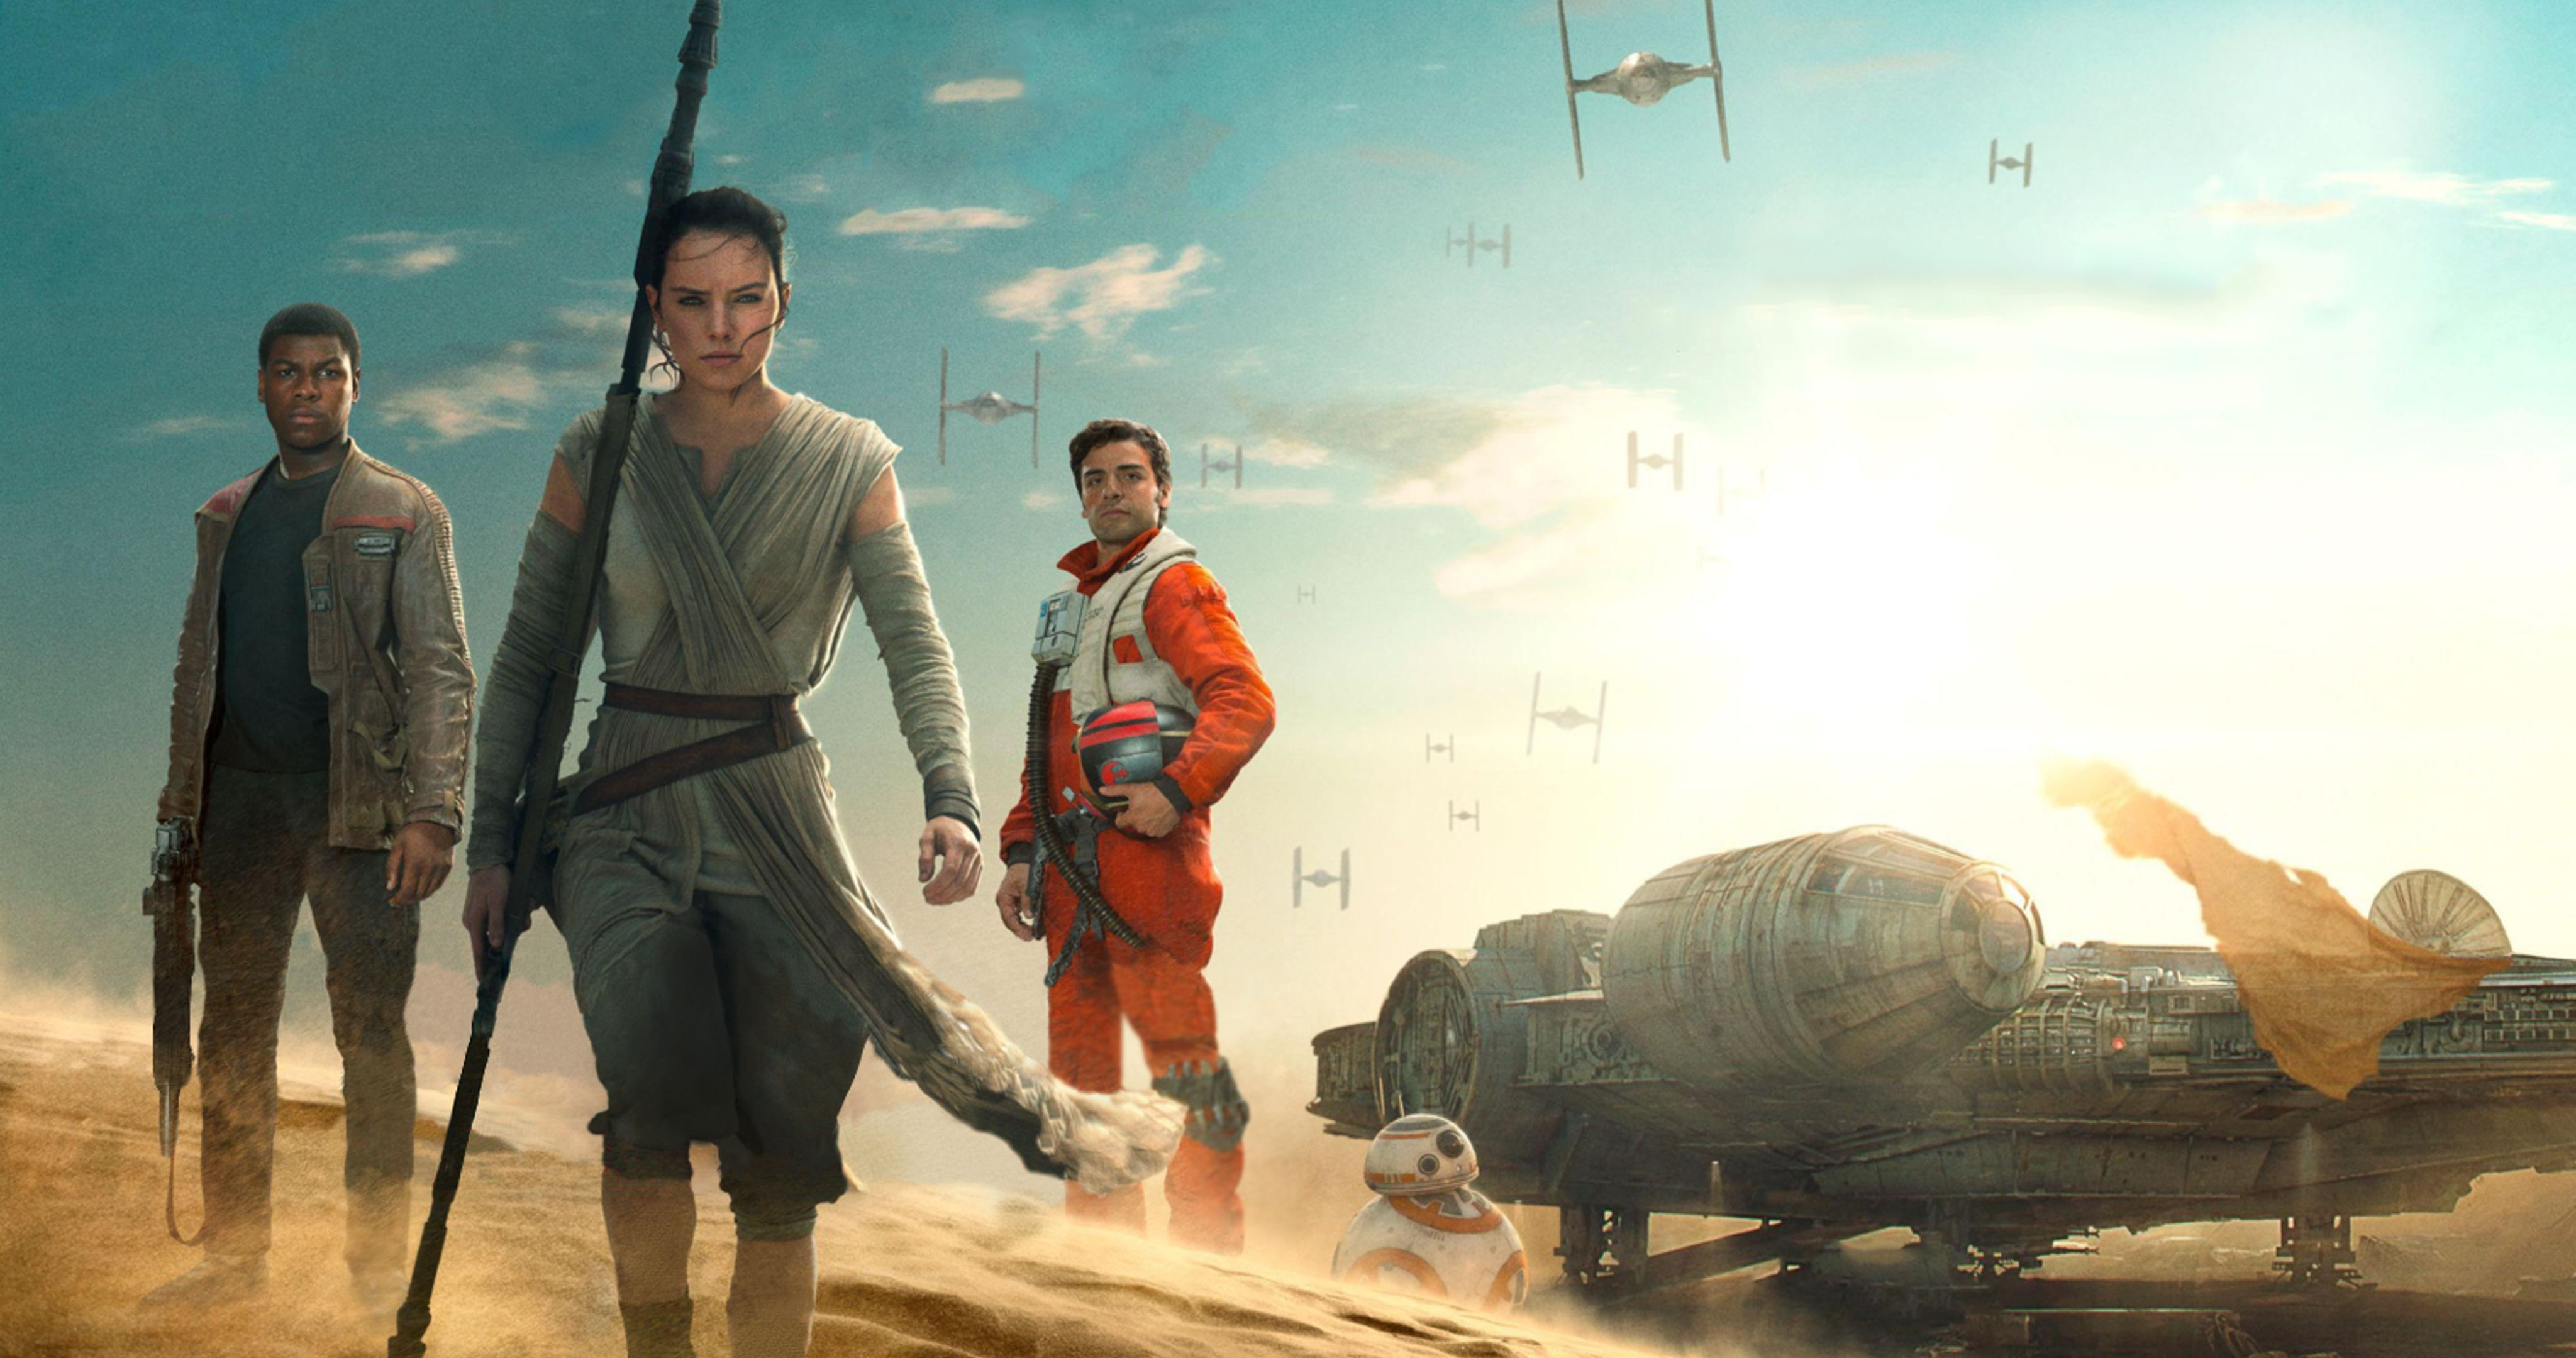 bb-8-finn-poe-dameron-rey-star-wars-the-force-awakens